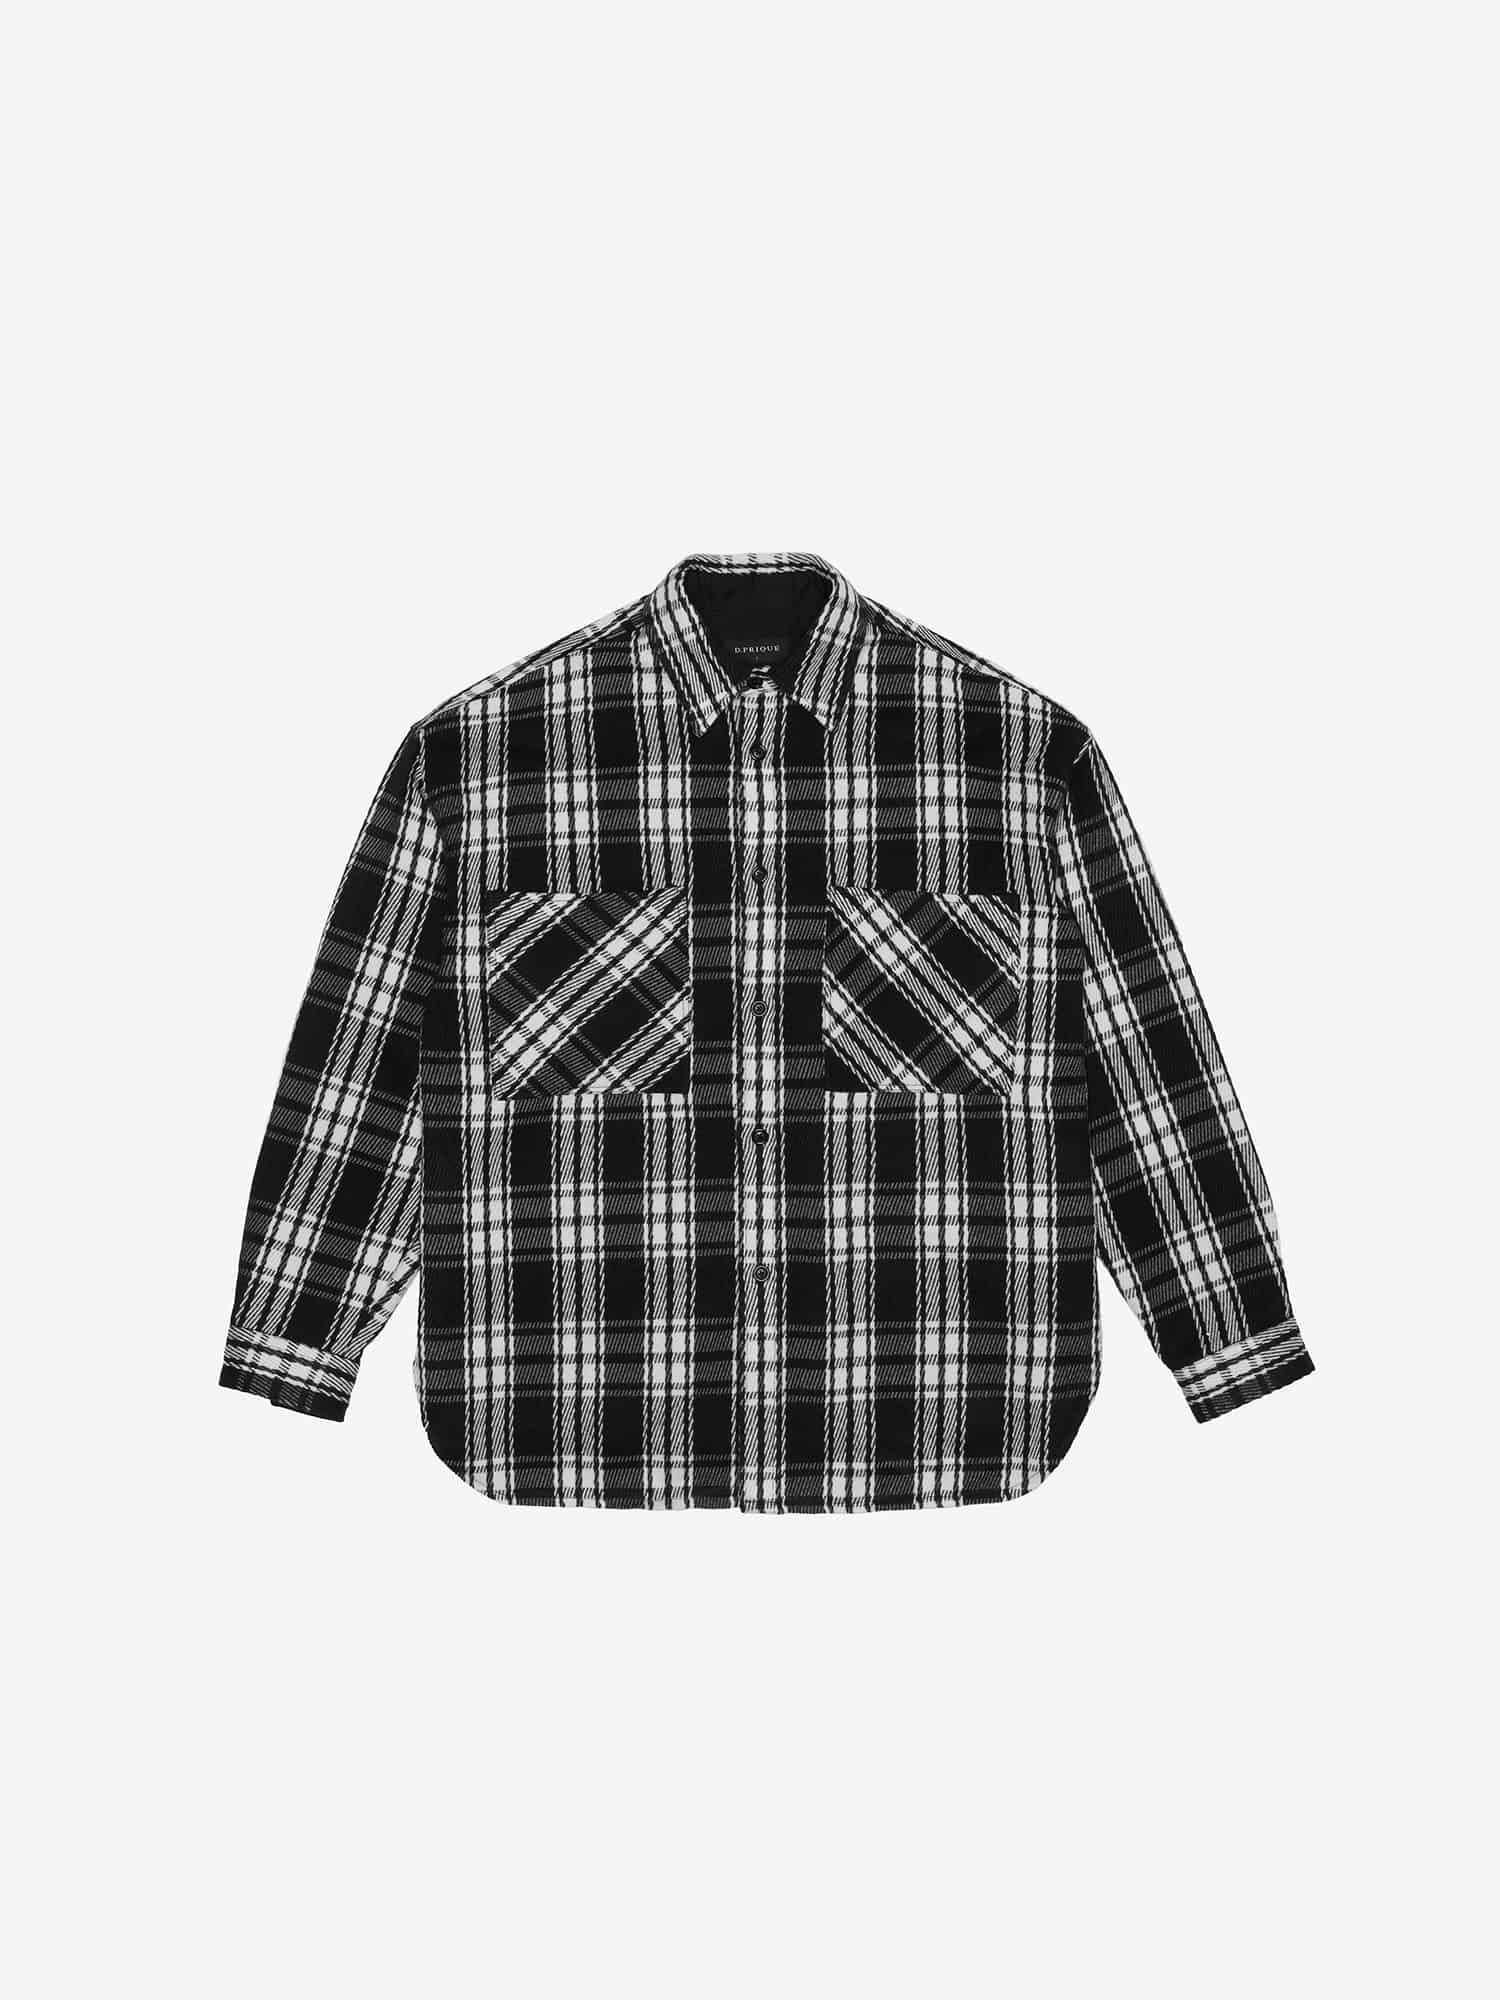 OVERSHIRT JACKET - Black